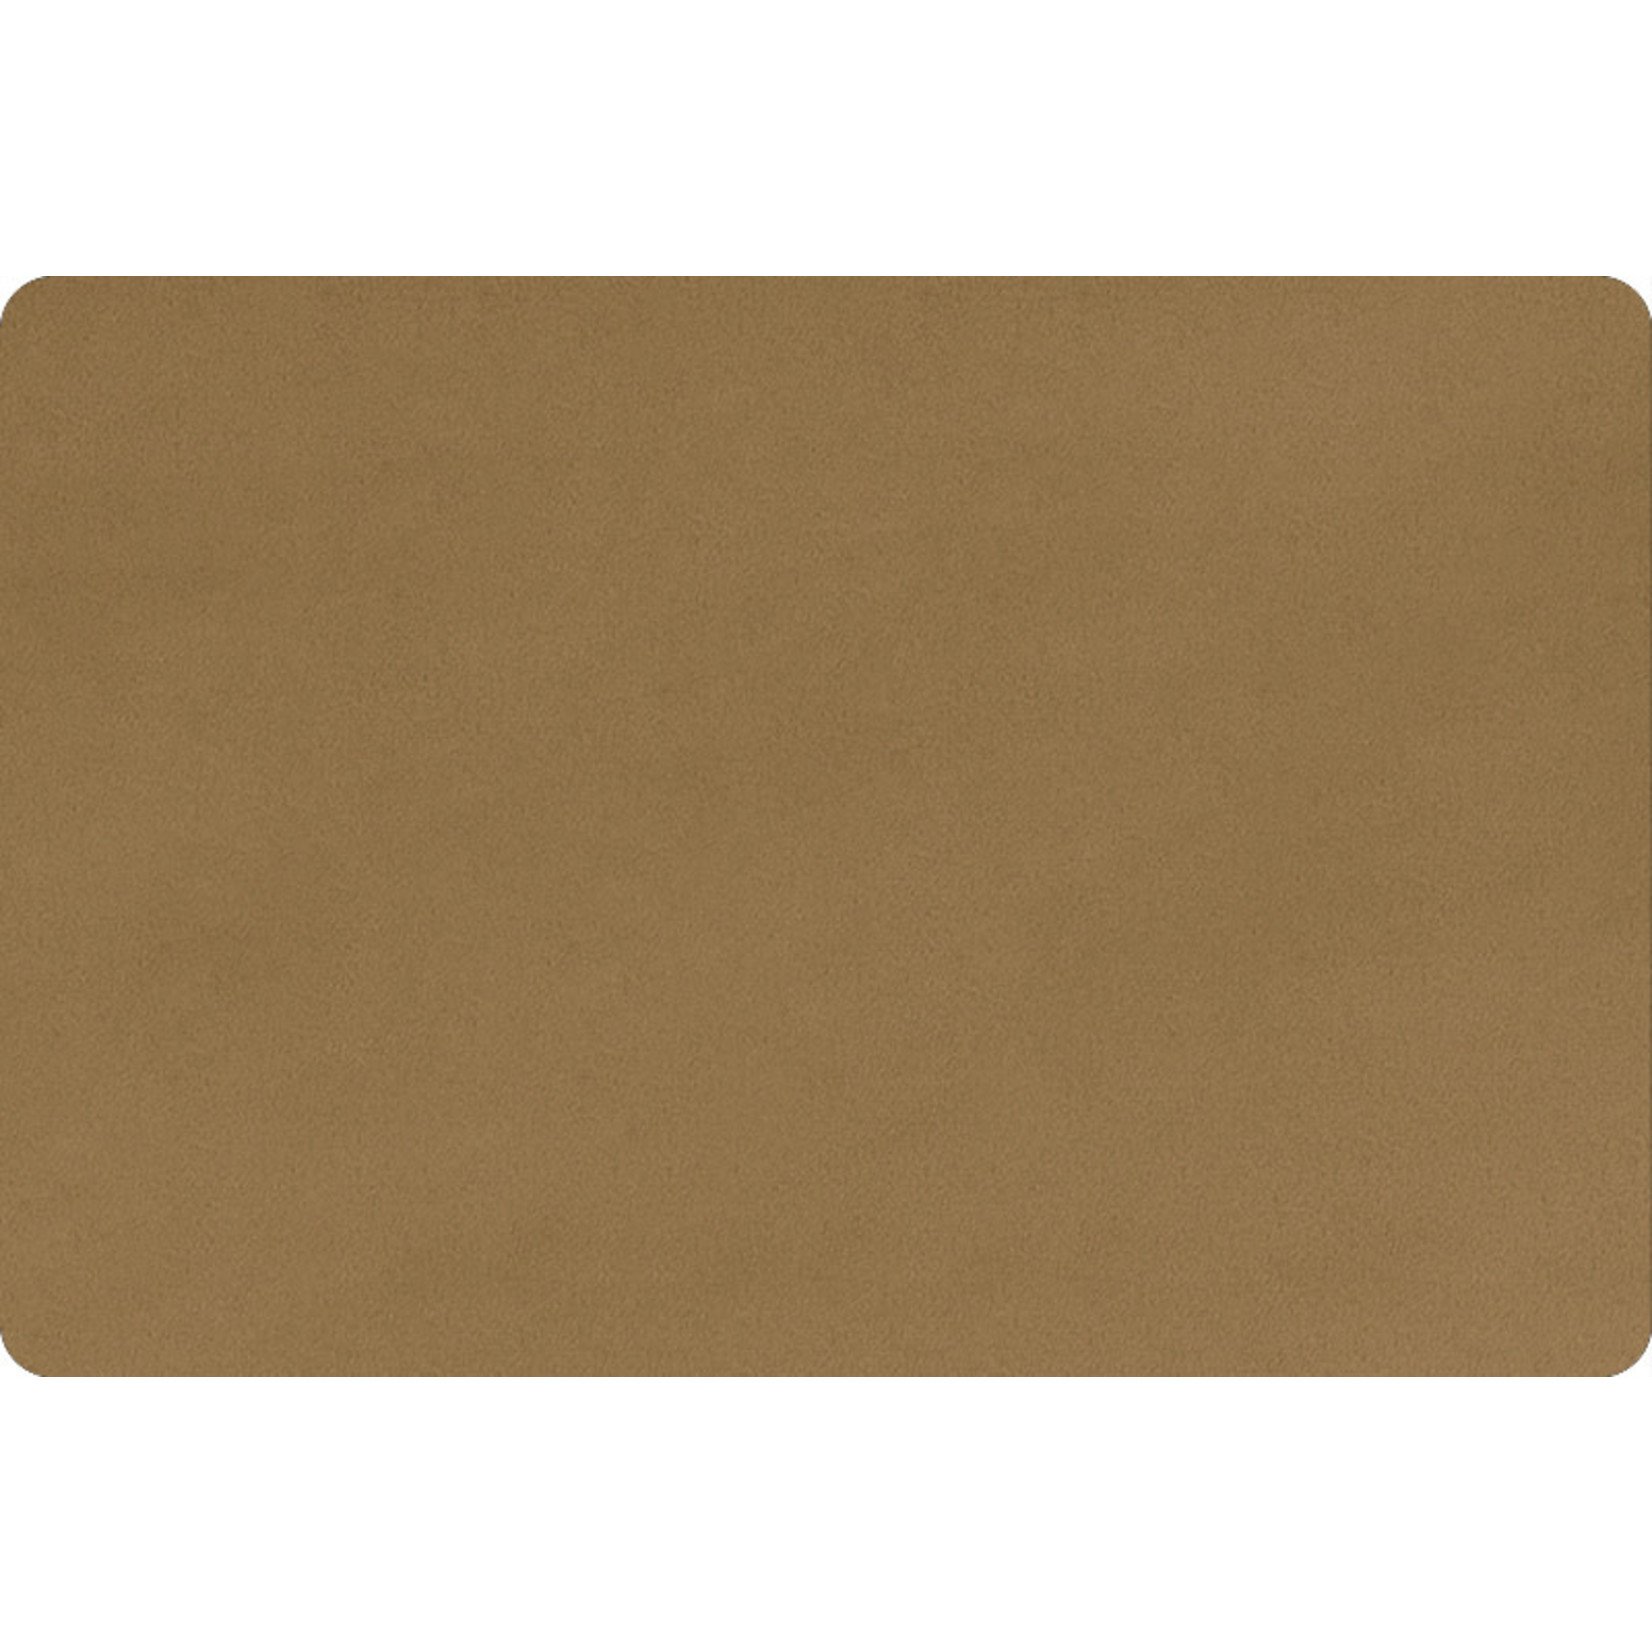 """Shannon Fabrics Minky, Extra Wide Solid Cuddle3, 90"""" Cappuccino, (by the inch)"""